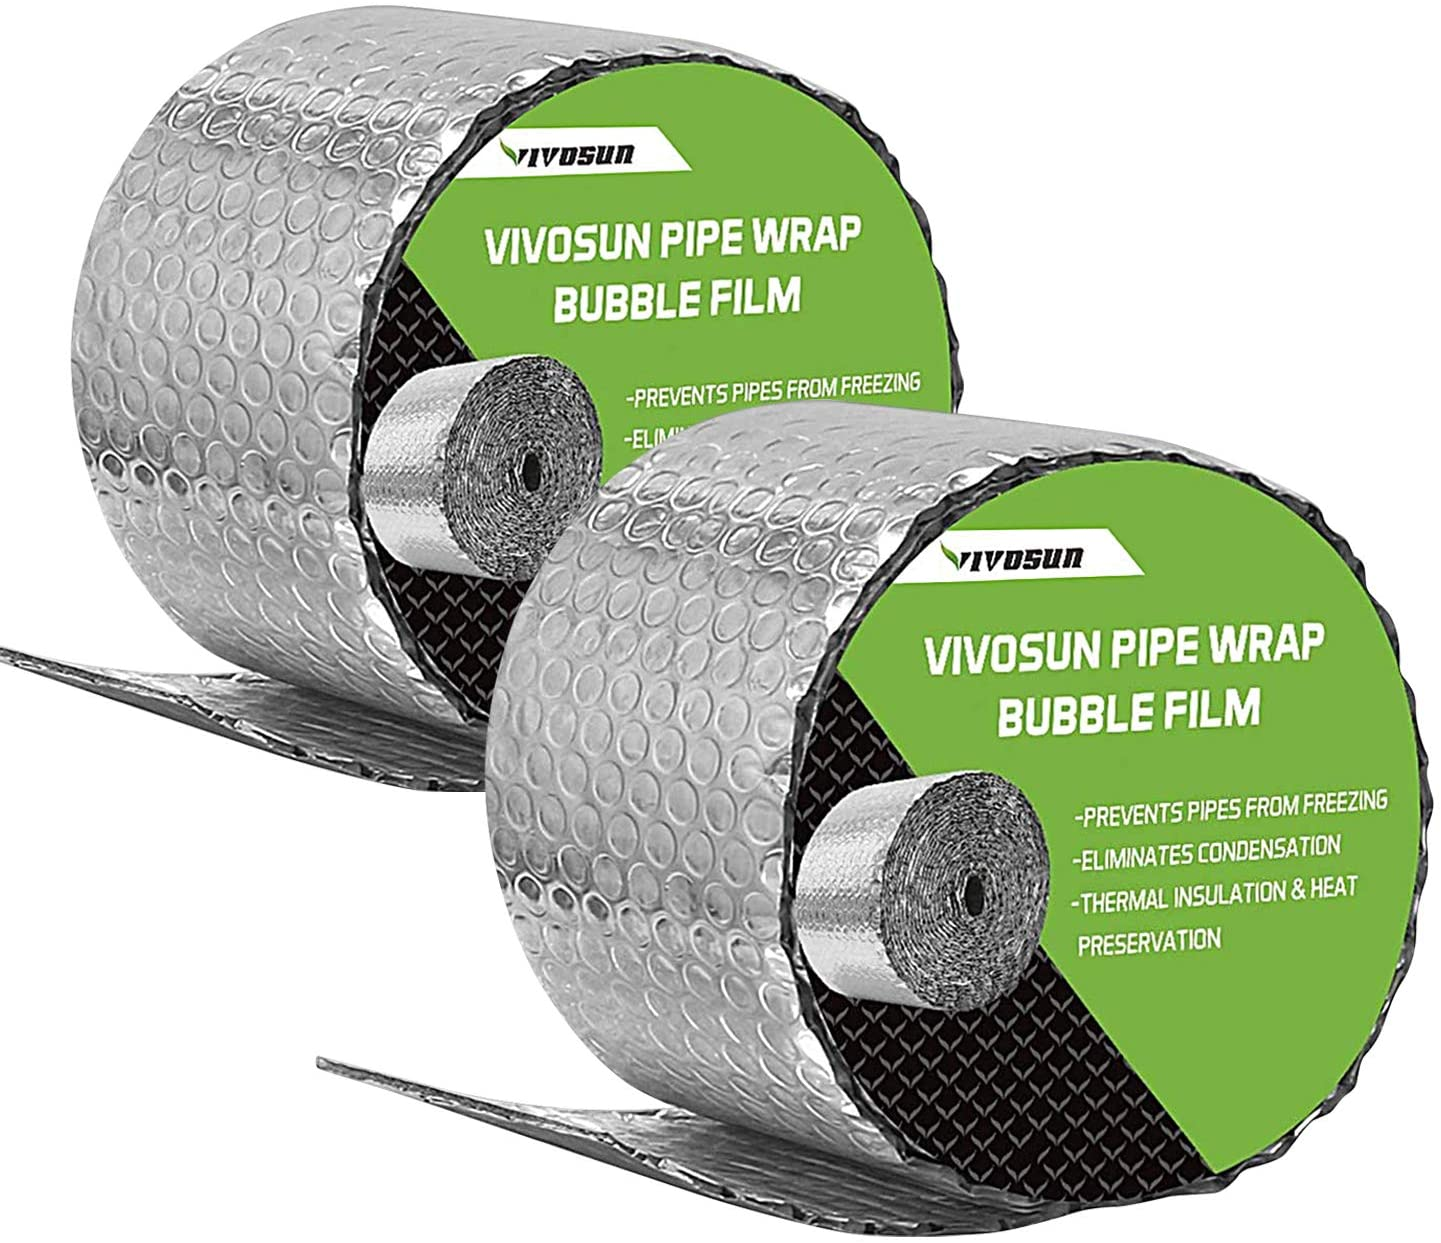 VIVOSUN Wrap Insulation Bubble Film 6-Inch by 25-Feet, 2 Pack - VIVOSUN